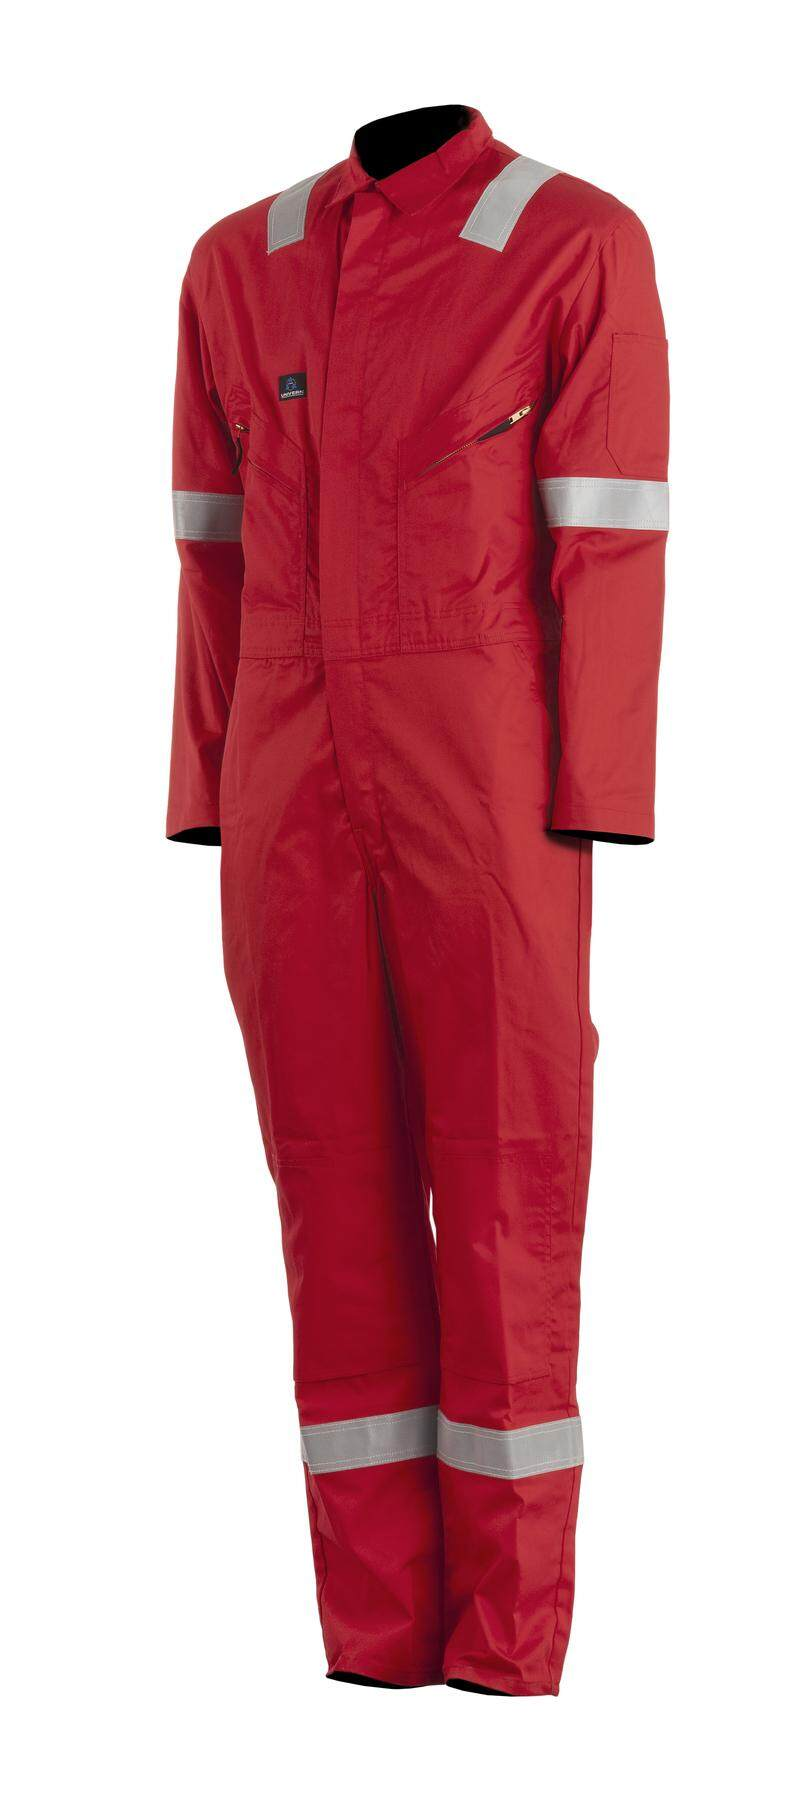 Cotton Coveralls Red EUR 54 (3XL)